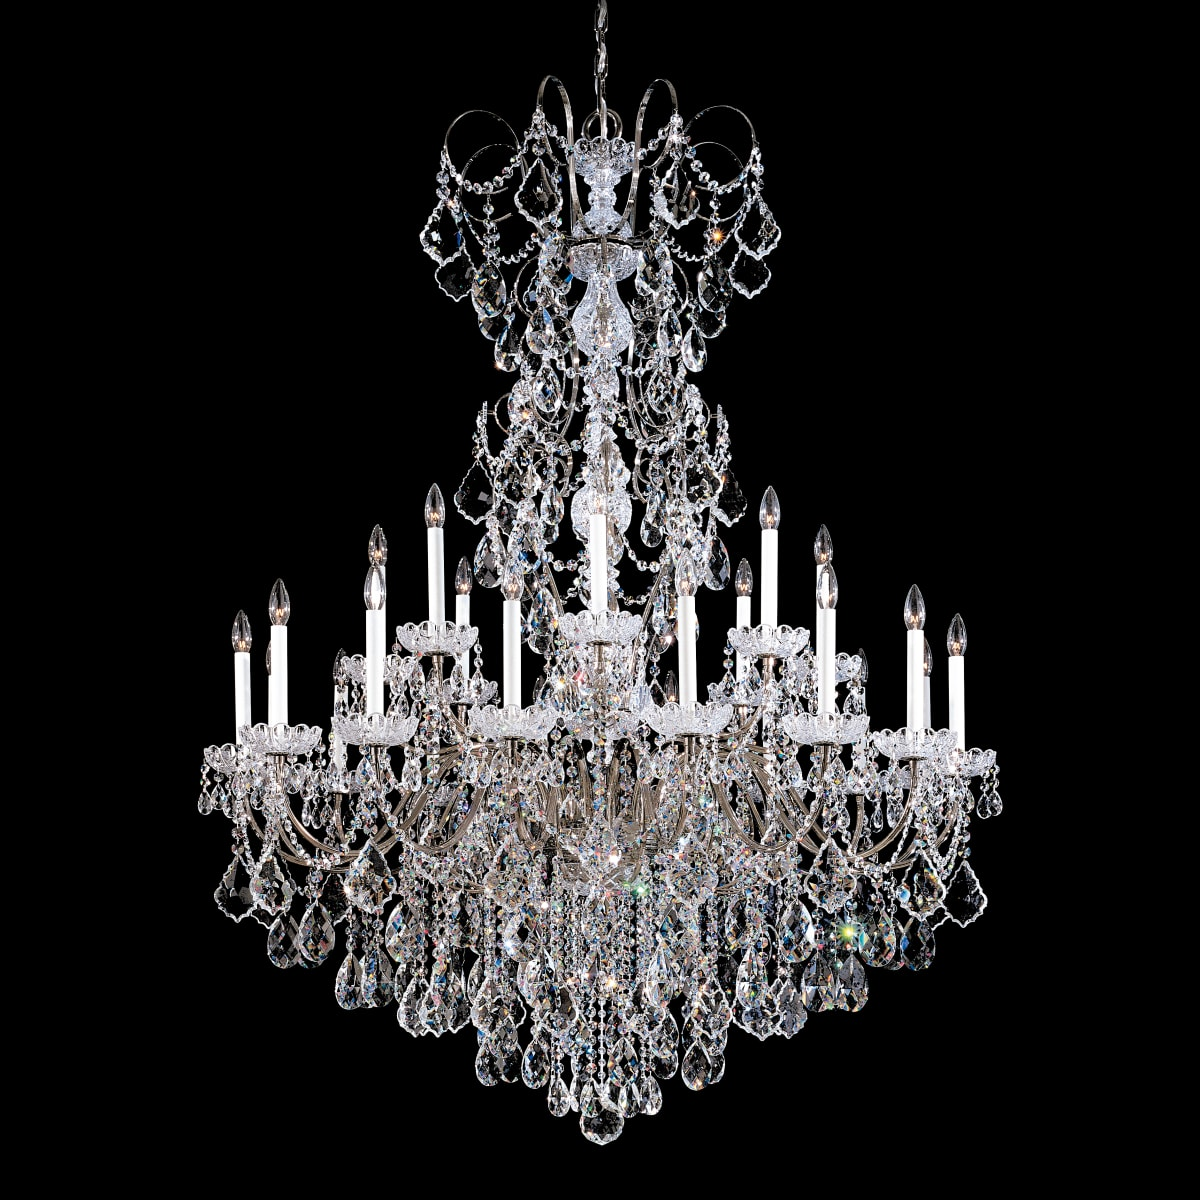 Schonbek 3662 49tk Black Pearl New Orleans 24 Light 48 Wide Crystal Chandelier With Golden Teak Swarovski Crystals Lightingshowplace Com